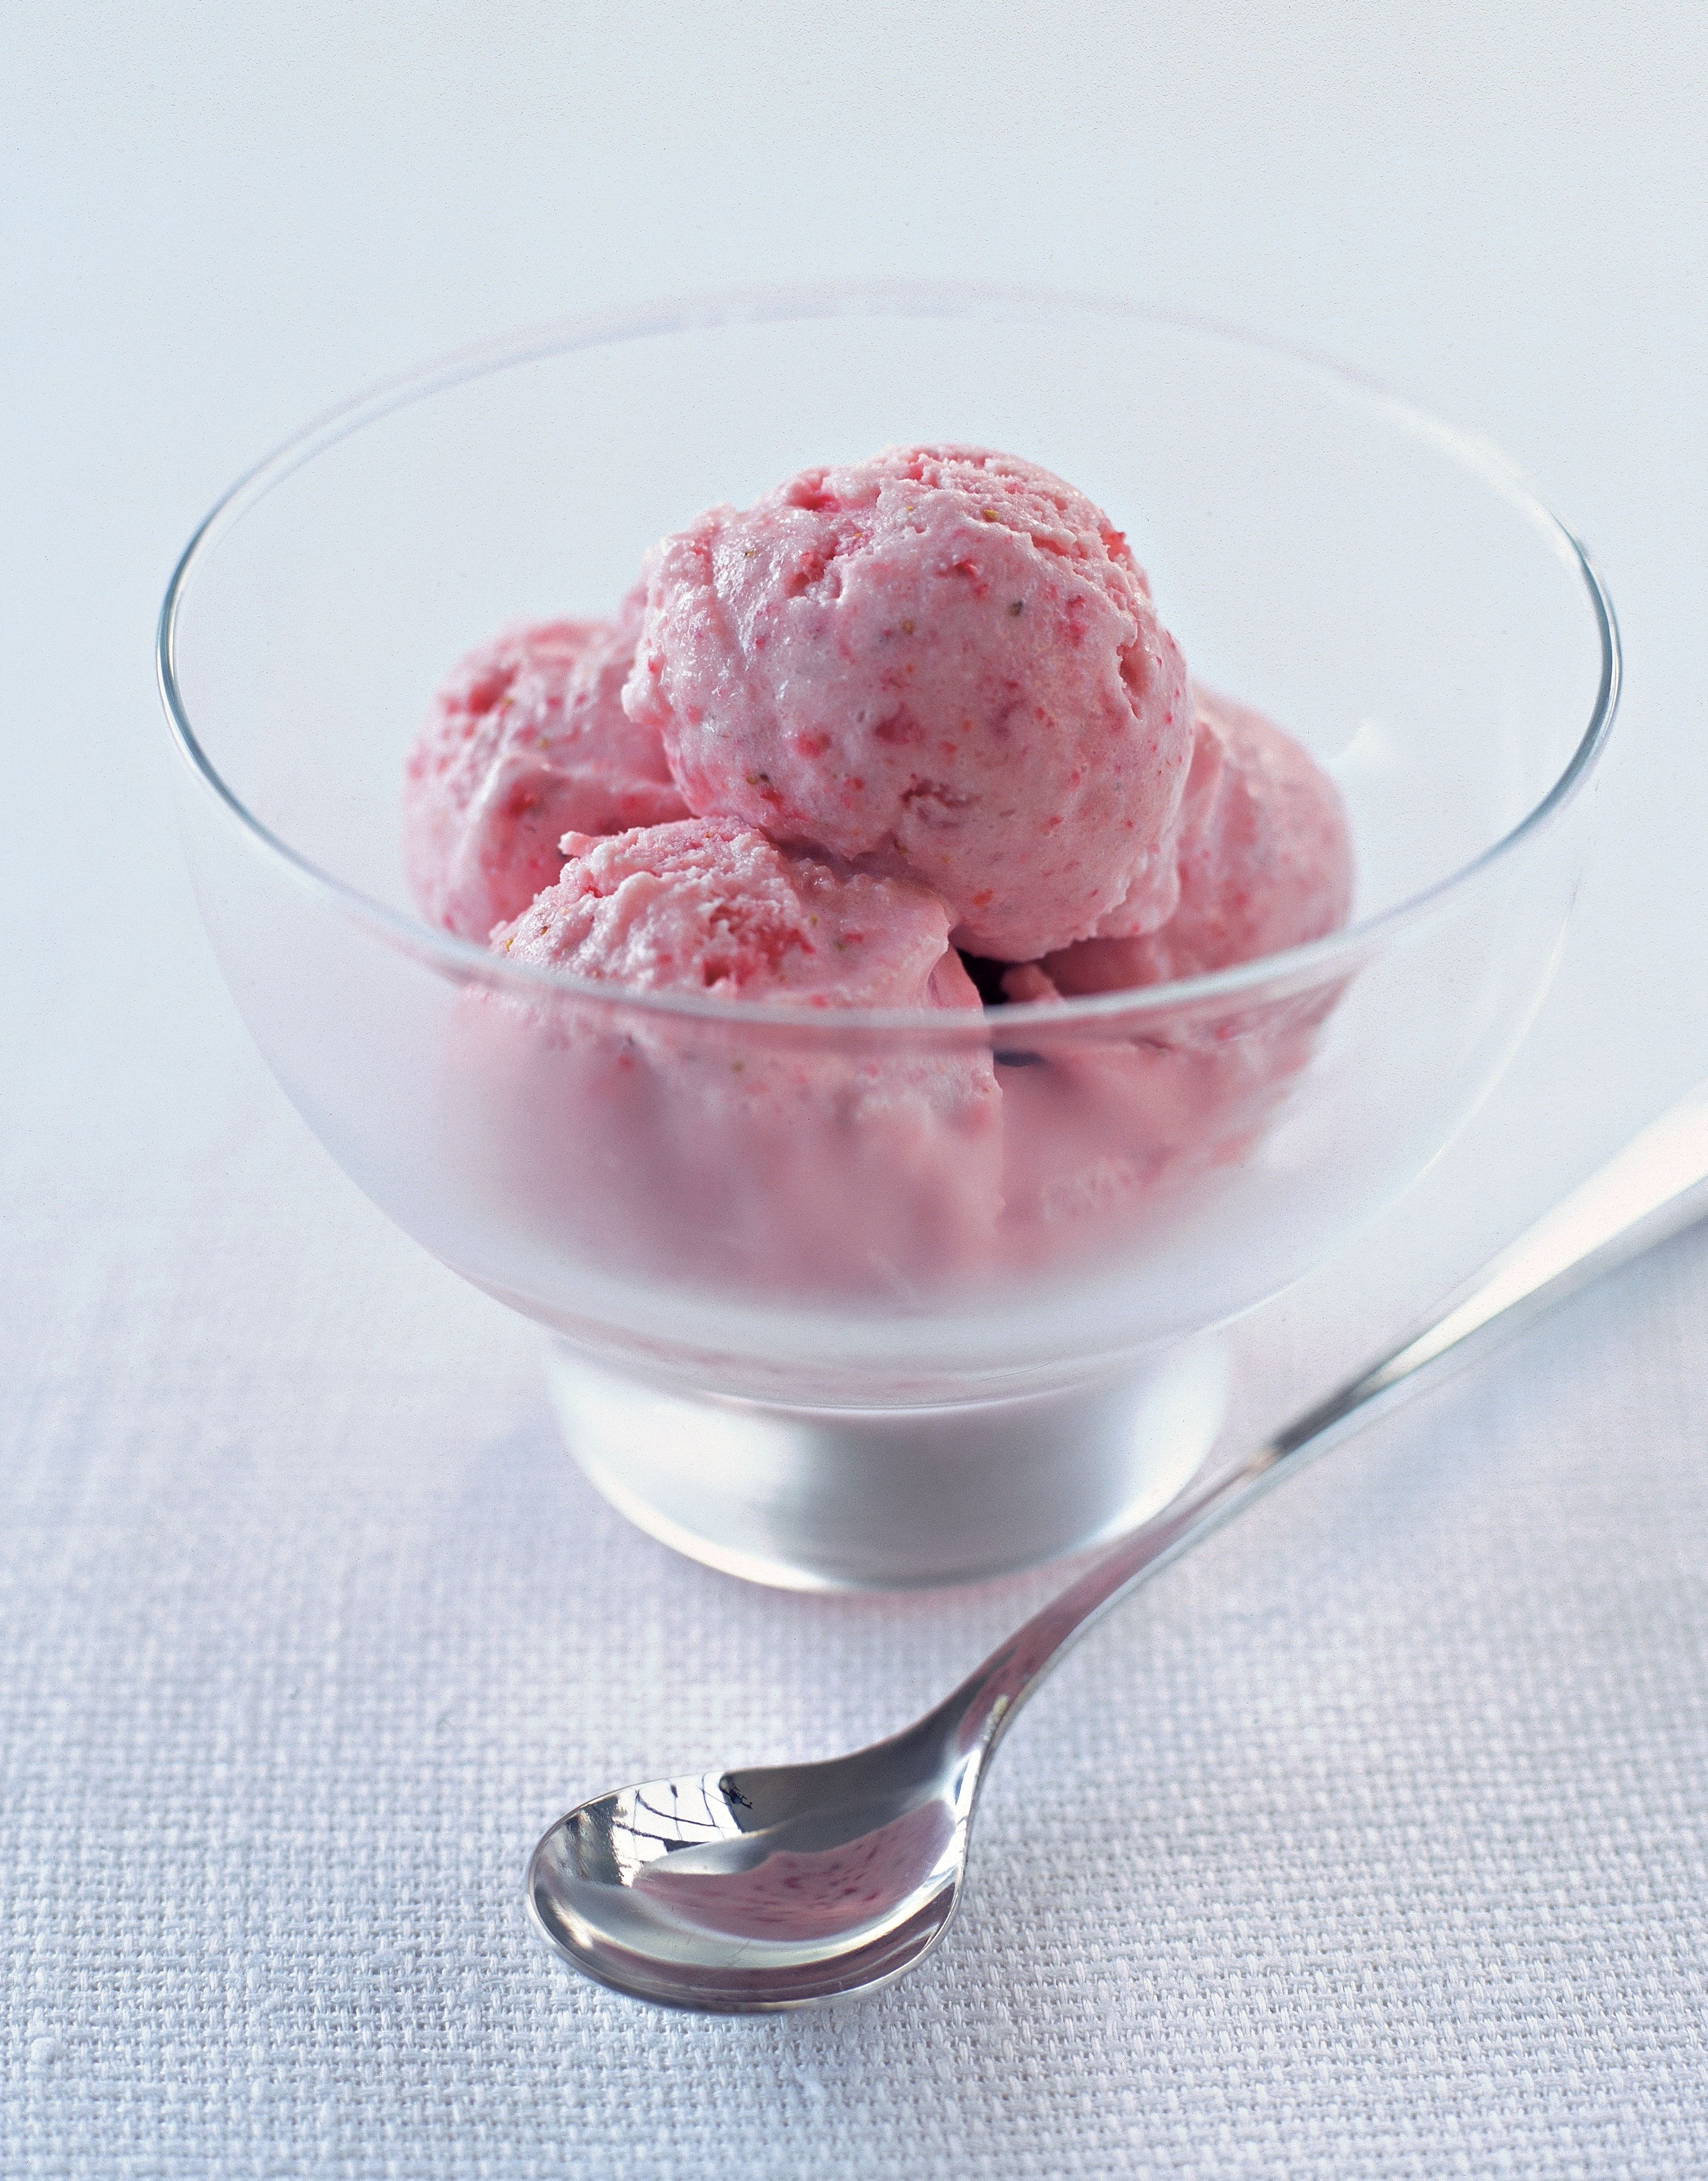 20-second strawberry ice cream